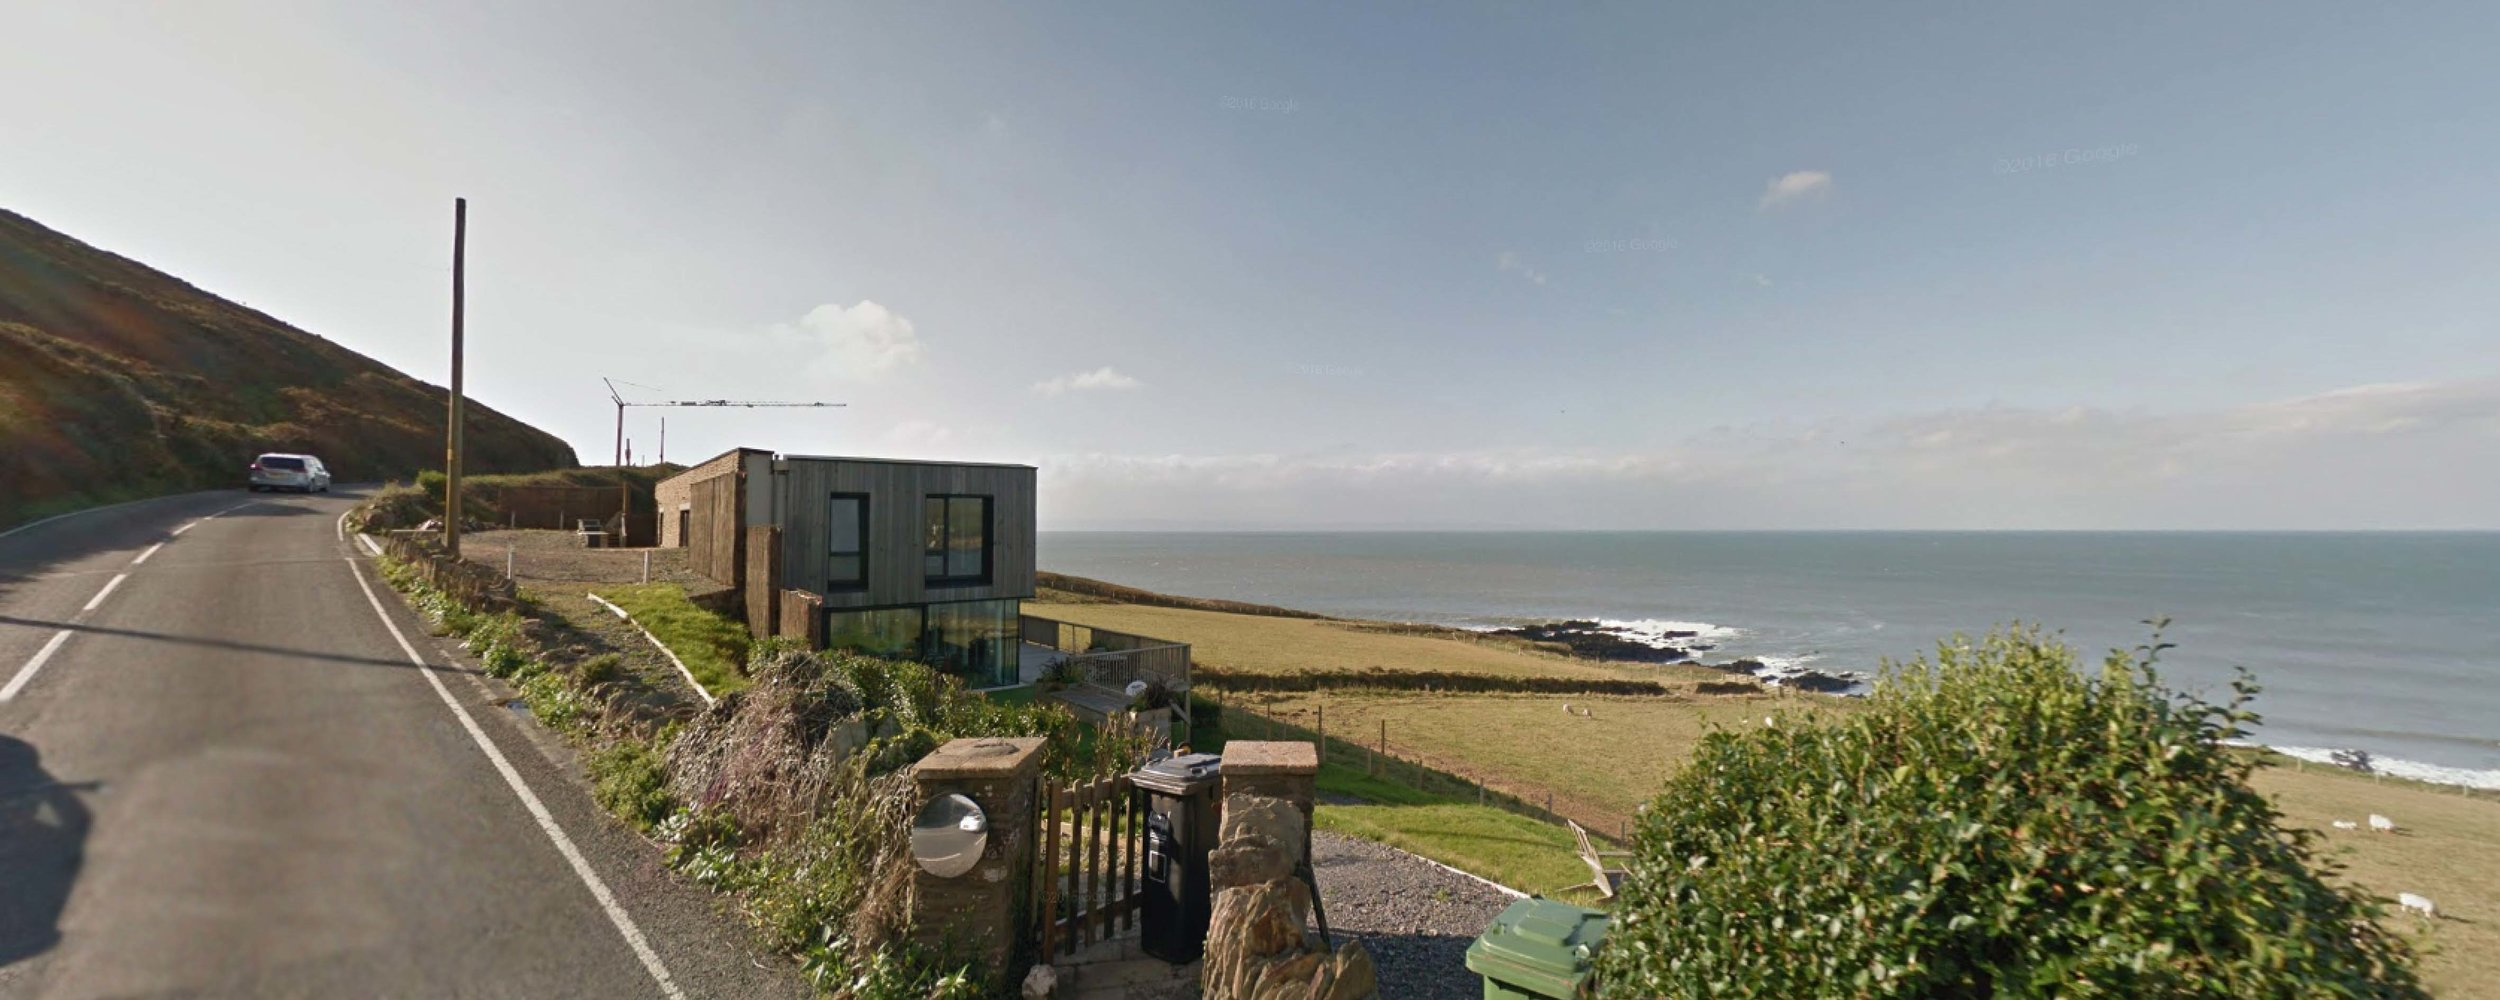 The completed scheme - located just south of Croyde on the B3231